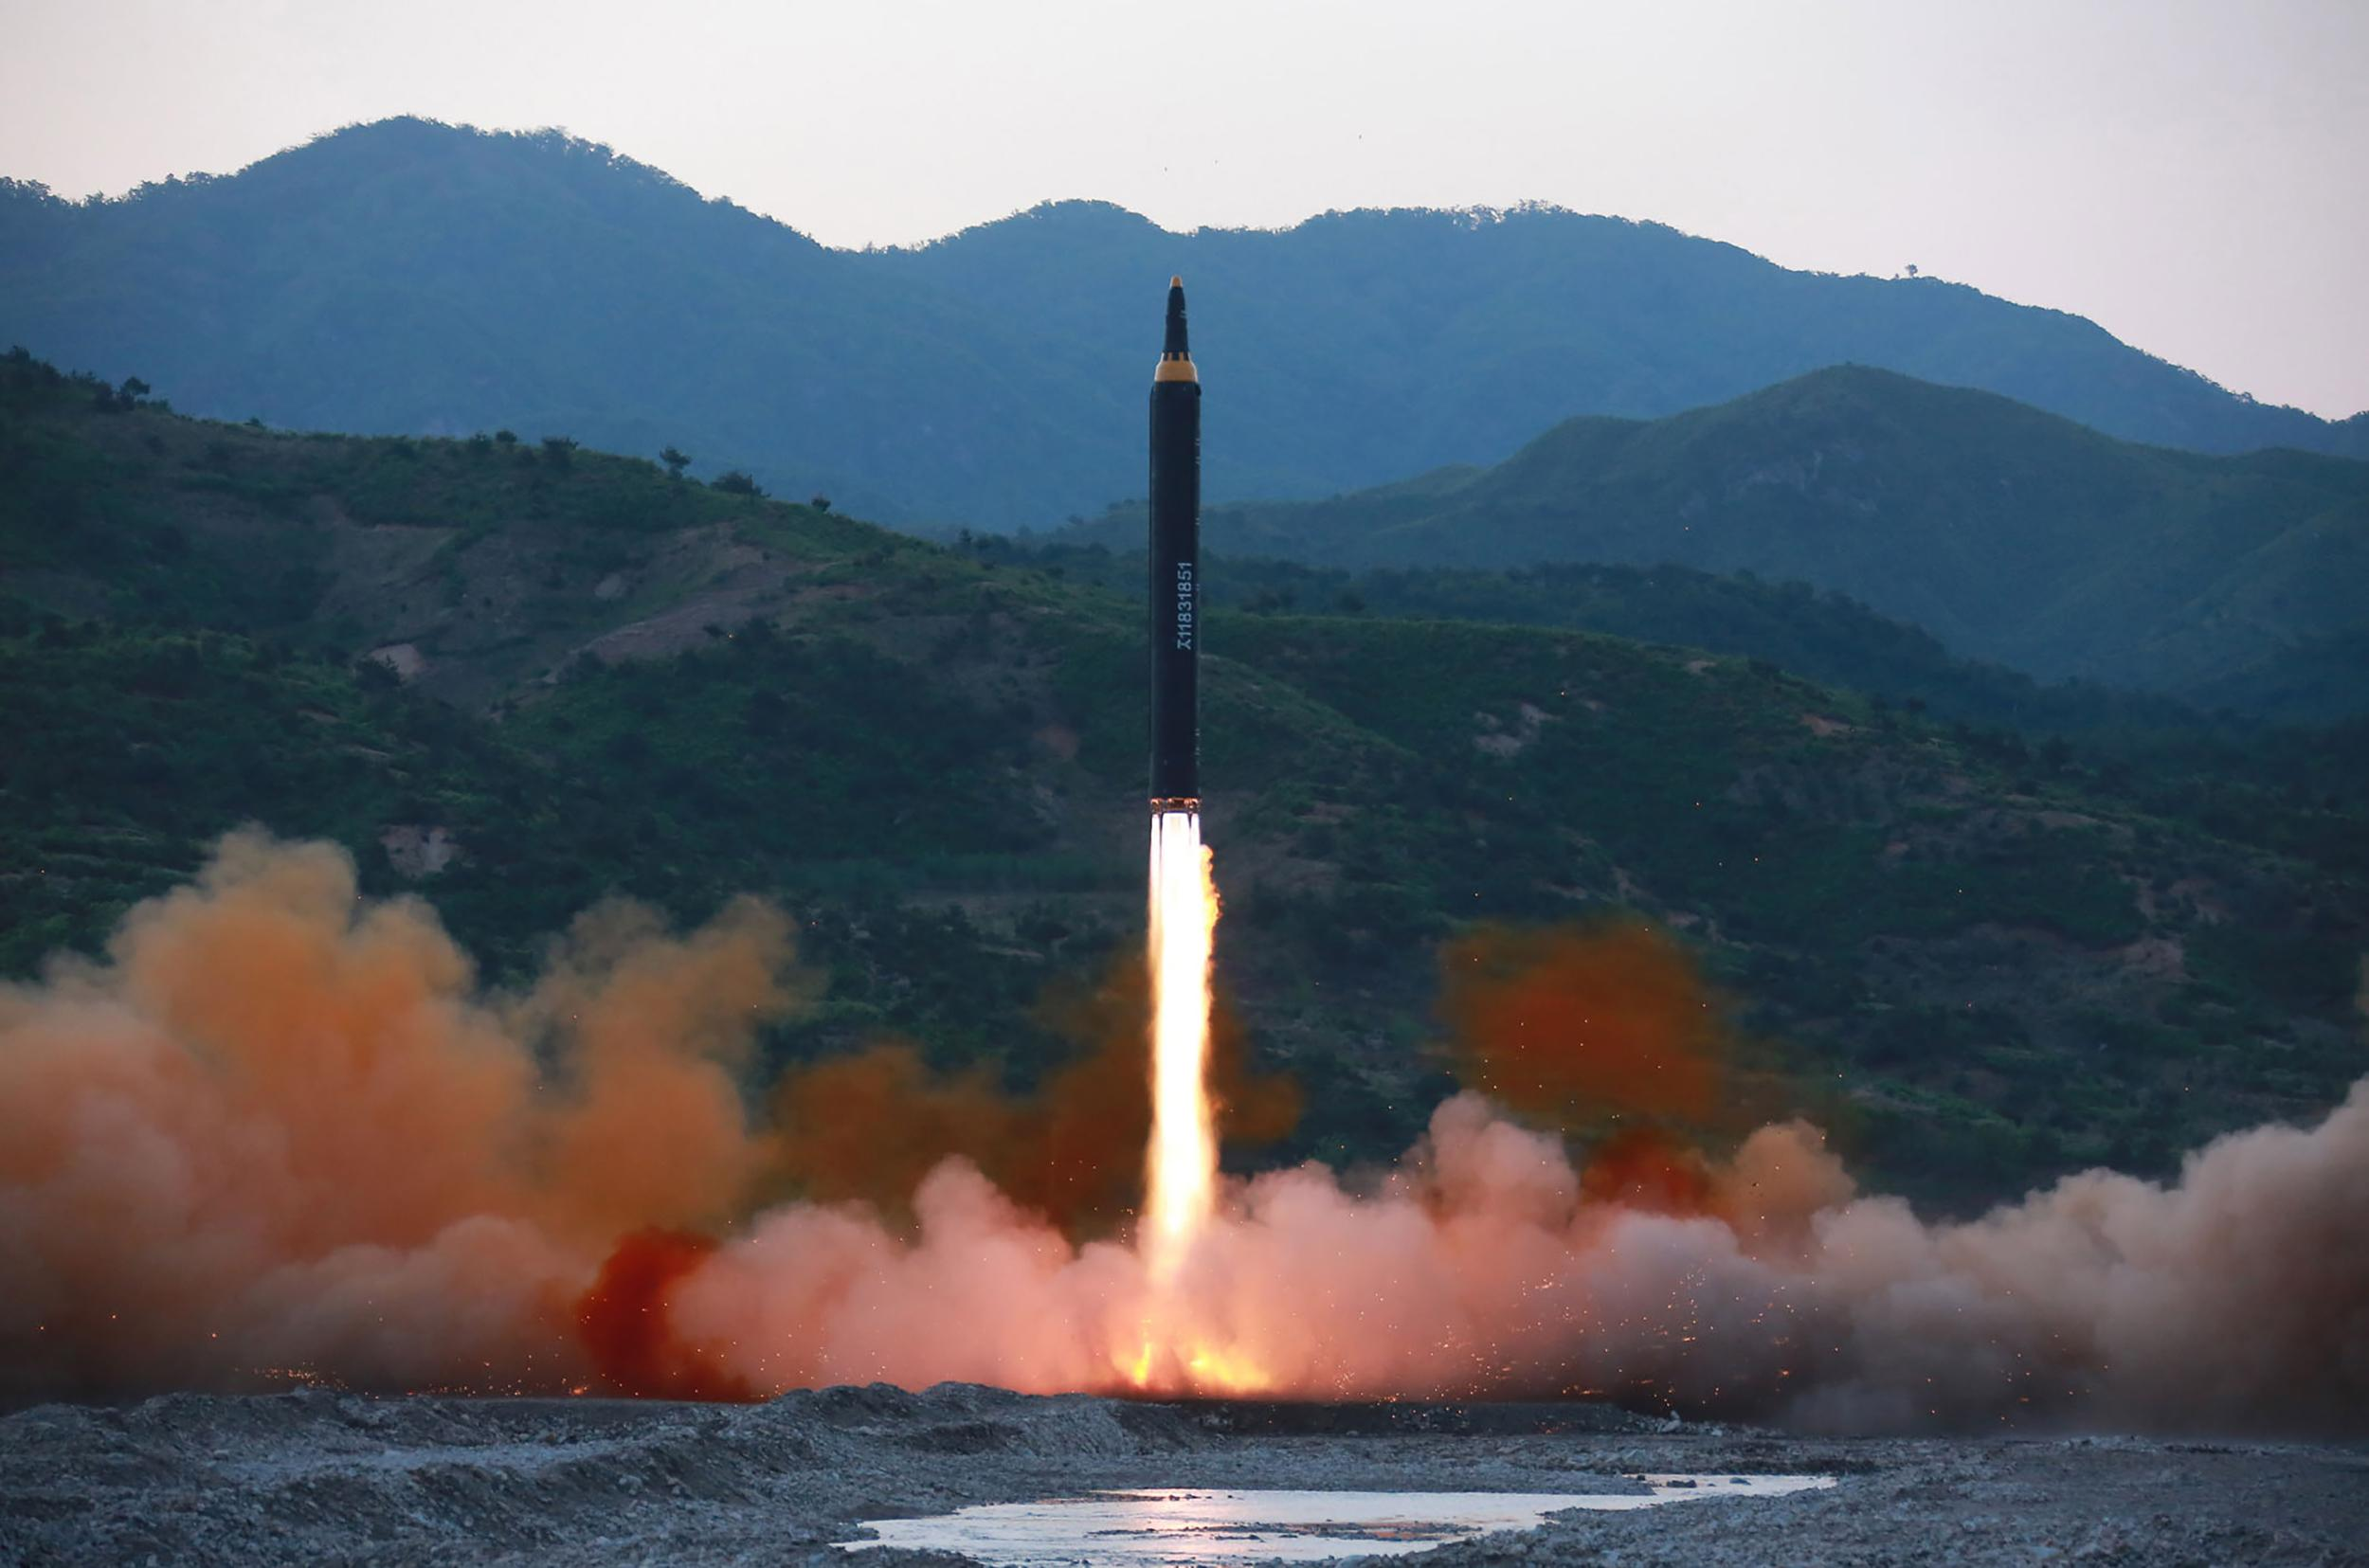 Red-faced Kim Jong-un accidentally blasts OWN city in missile blunder